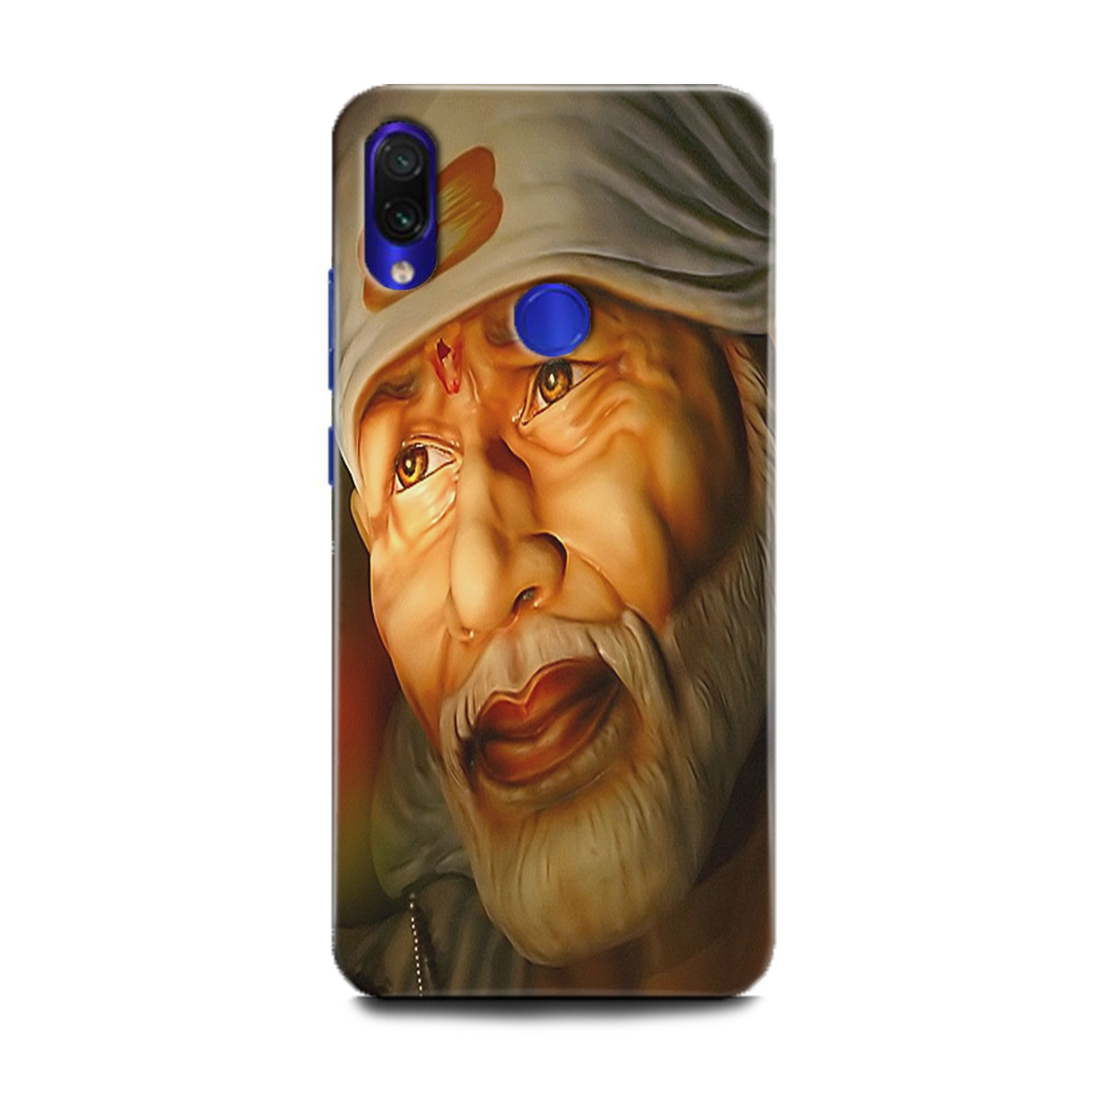 INDICRAFT Mobile Back Cover For Mi Redmi Note 7 Pro / Hard Case (Om Sai Baba, Om Sai, Om Sai Ram, Saibaba, God, MZB7464IN) (AB-Note7Pro-0247)